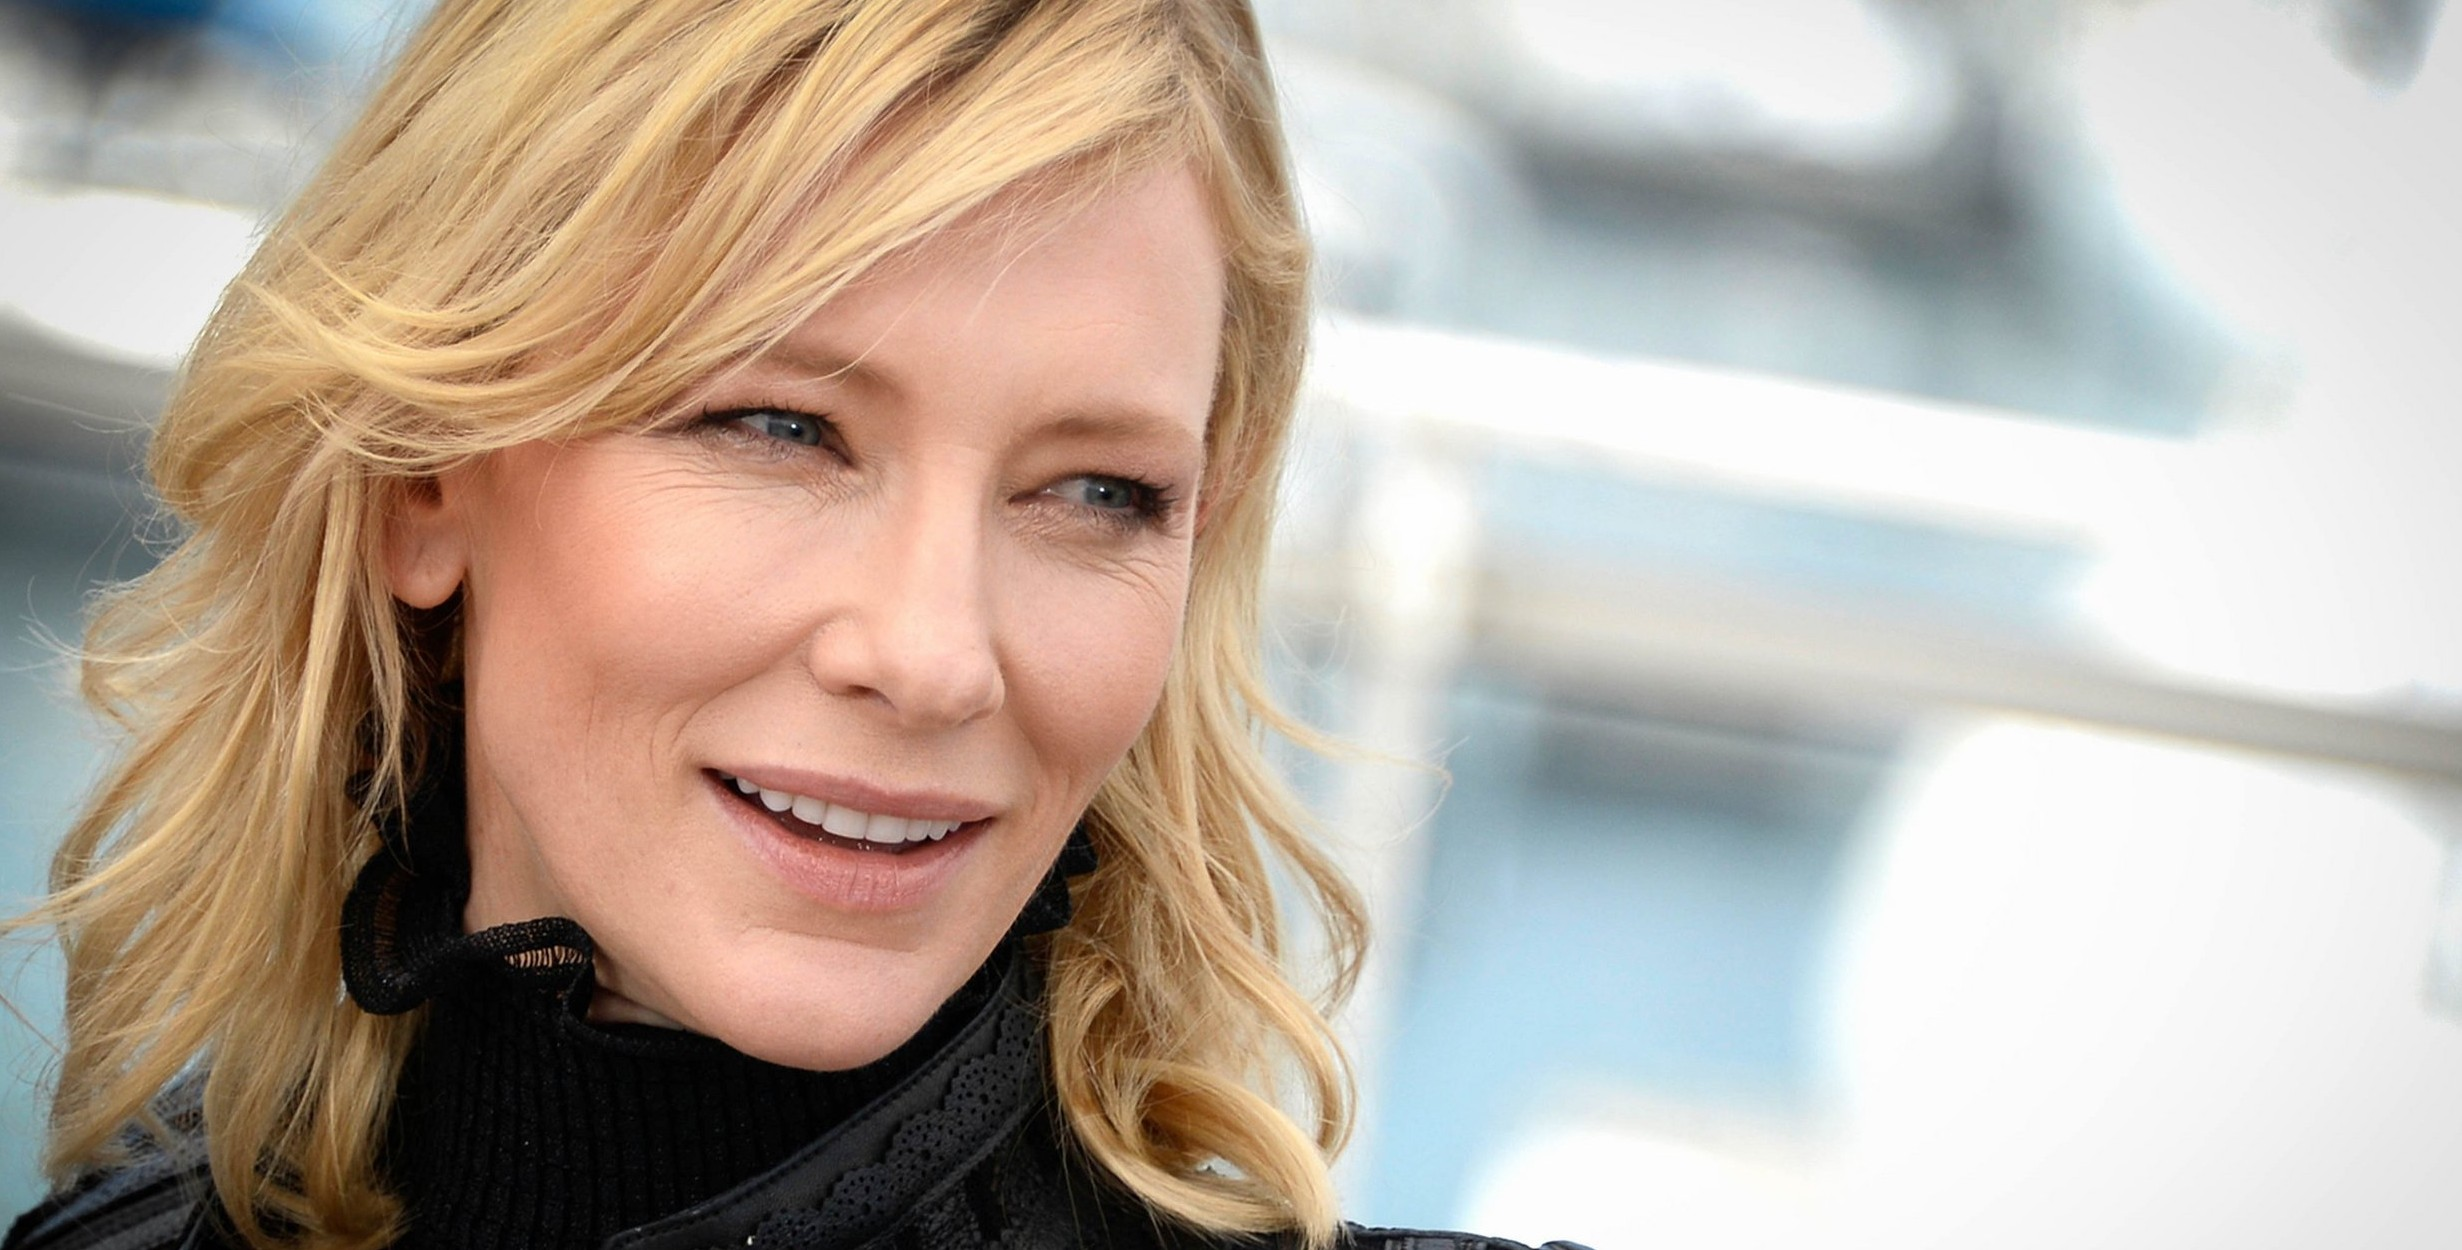 Cate Blanchett at the 68th Cannes Film Festival for the Carol Photocall